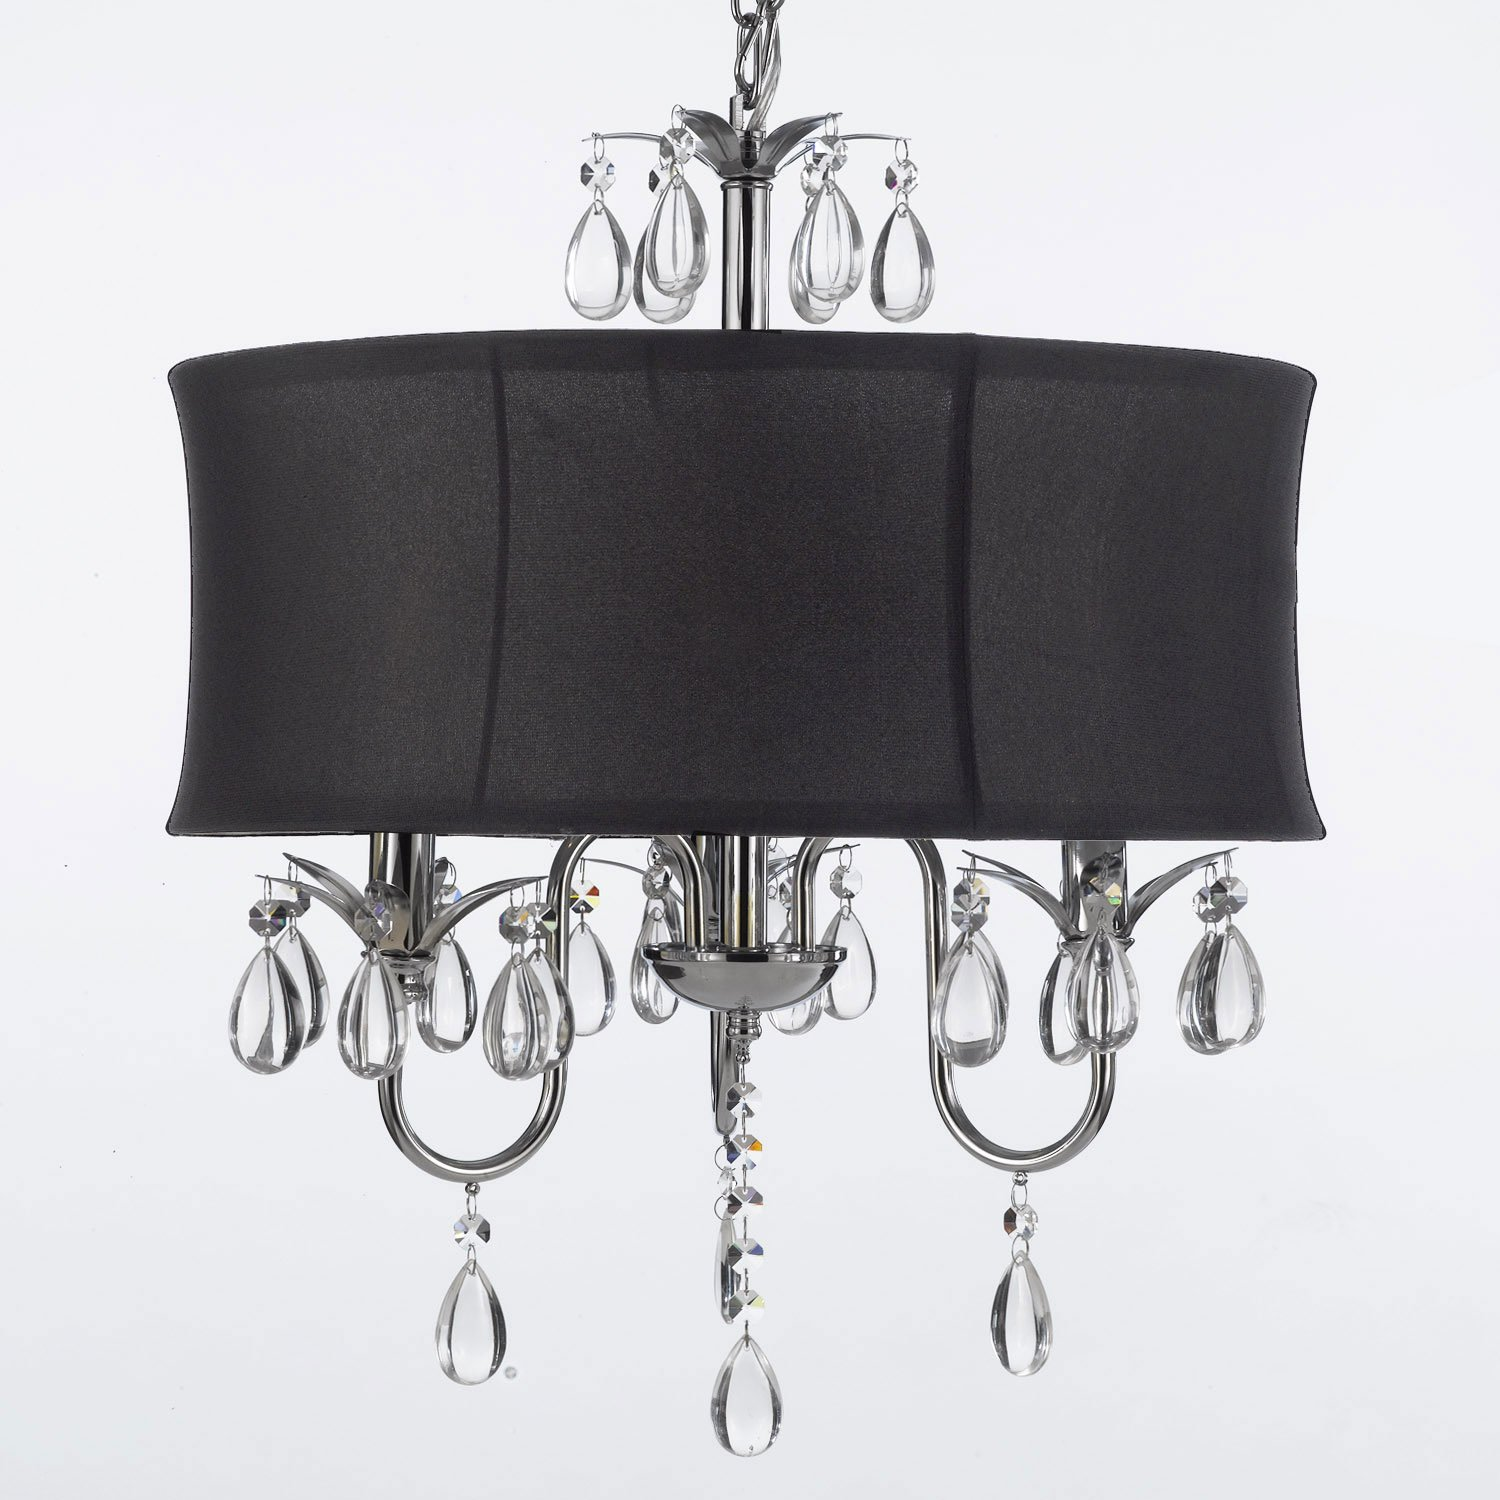 Modern Contemporary Black Drum Shade & Crystal Ceiling Chandelier